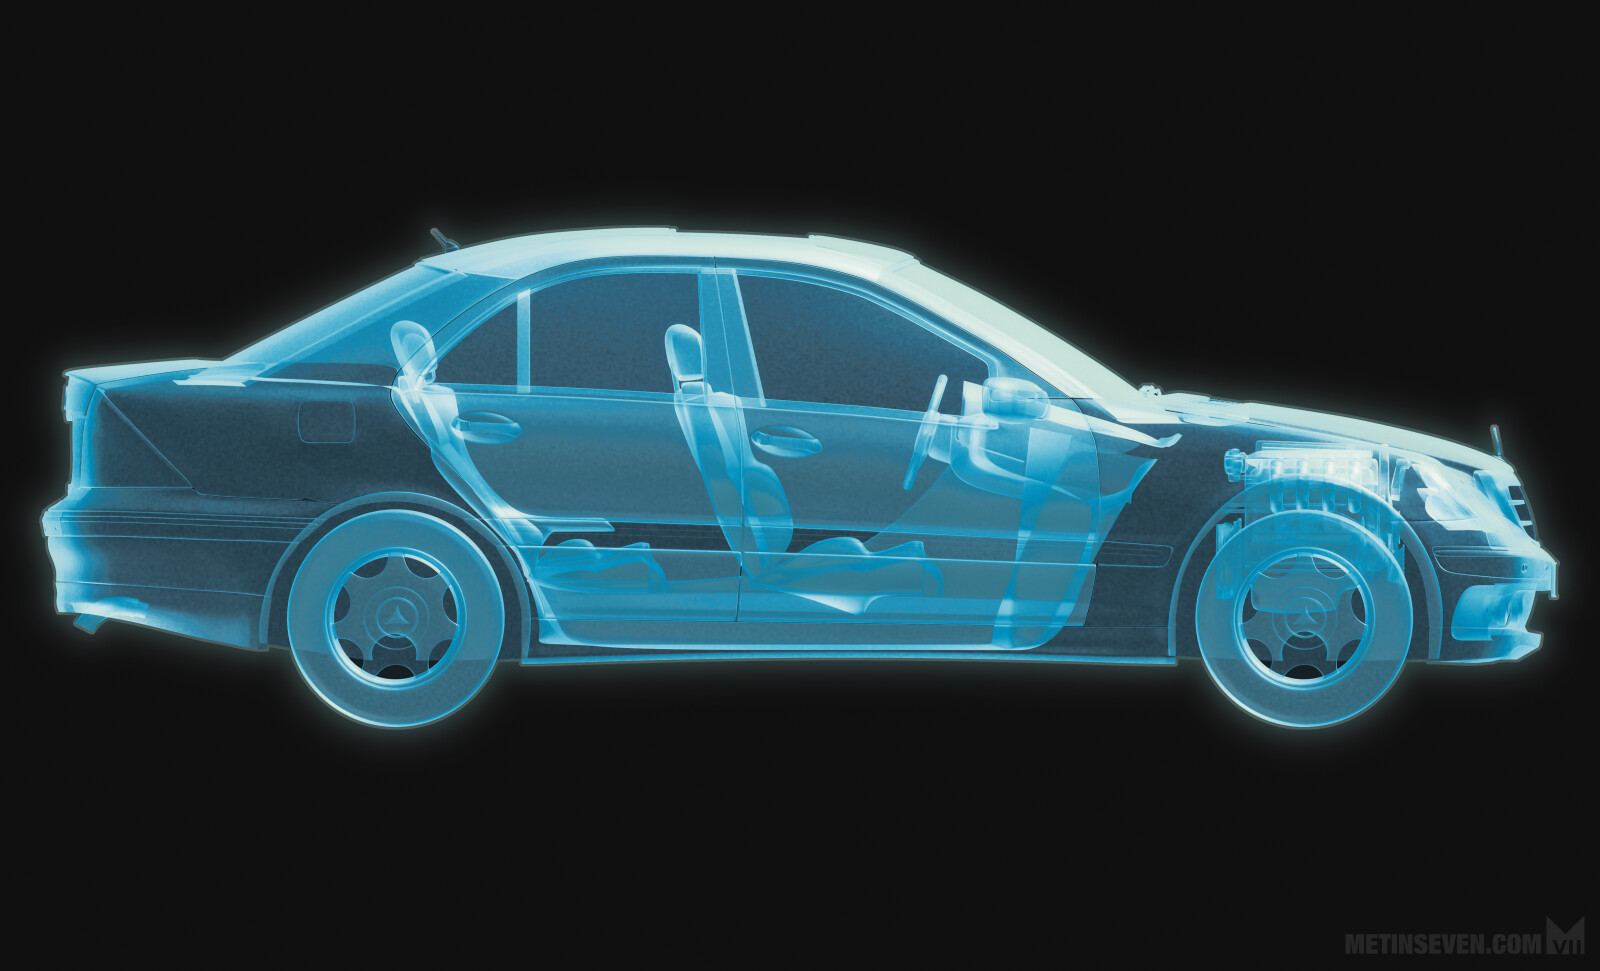 X-ray style automobile section for Mercedes-Benz magazine